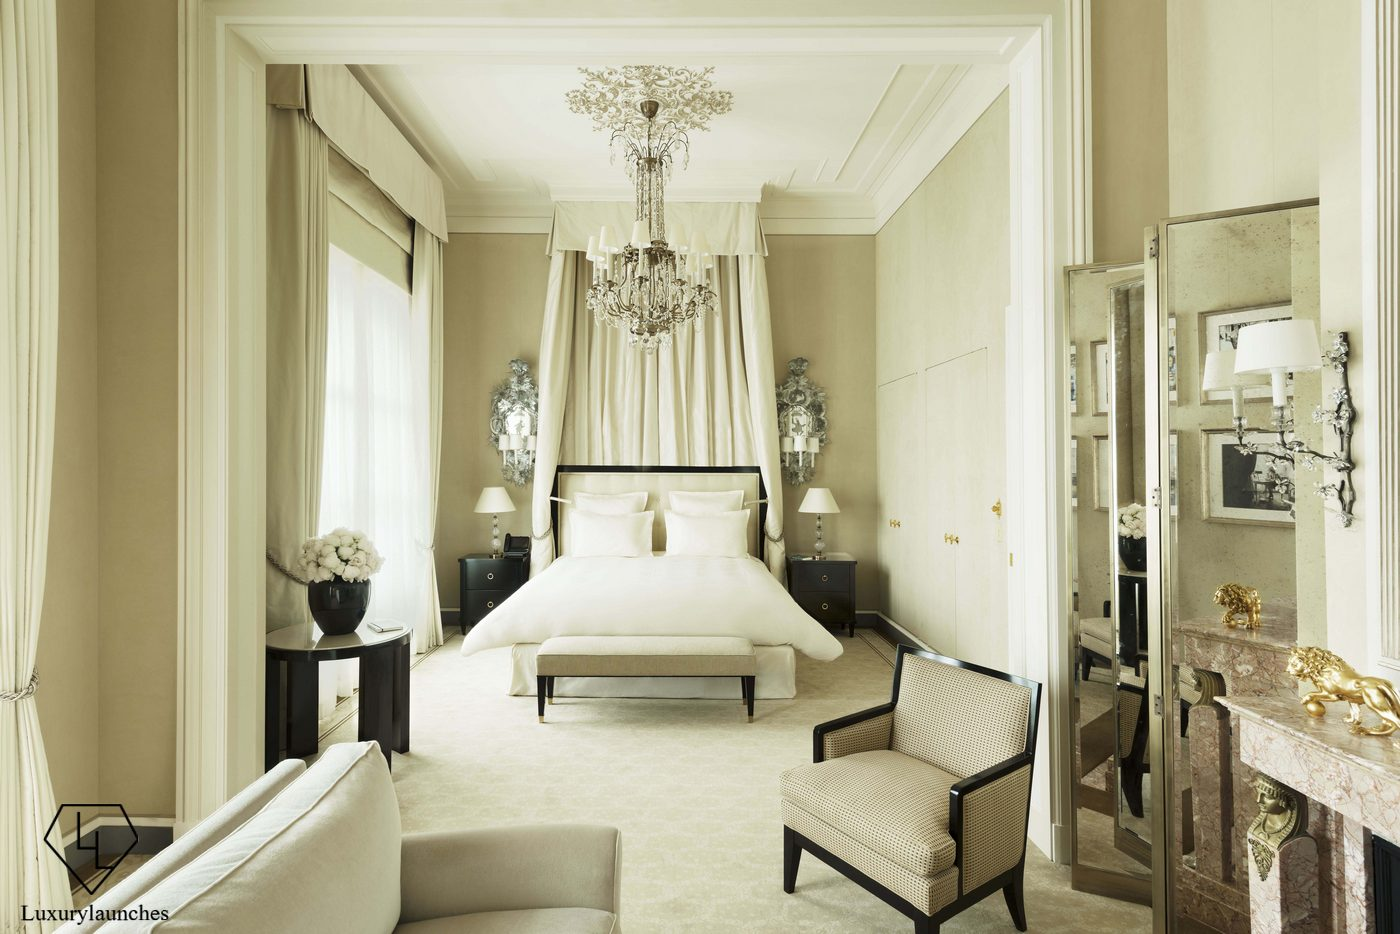 Most Expensive Shampoo >> Suite of the Week - the Coco Chanel Suite at the Ritz Paris